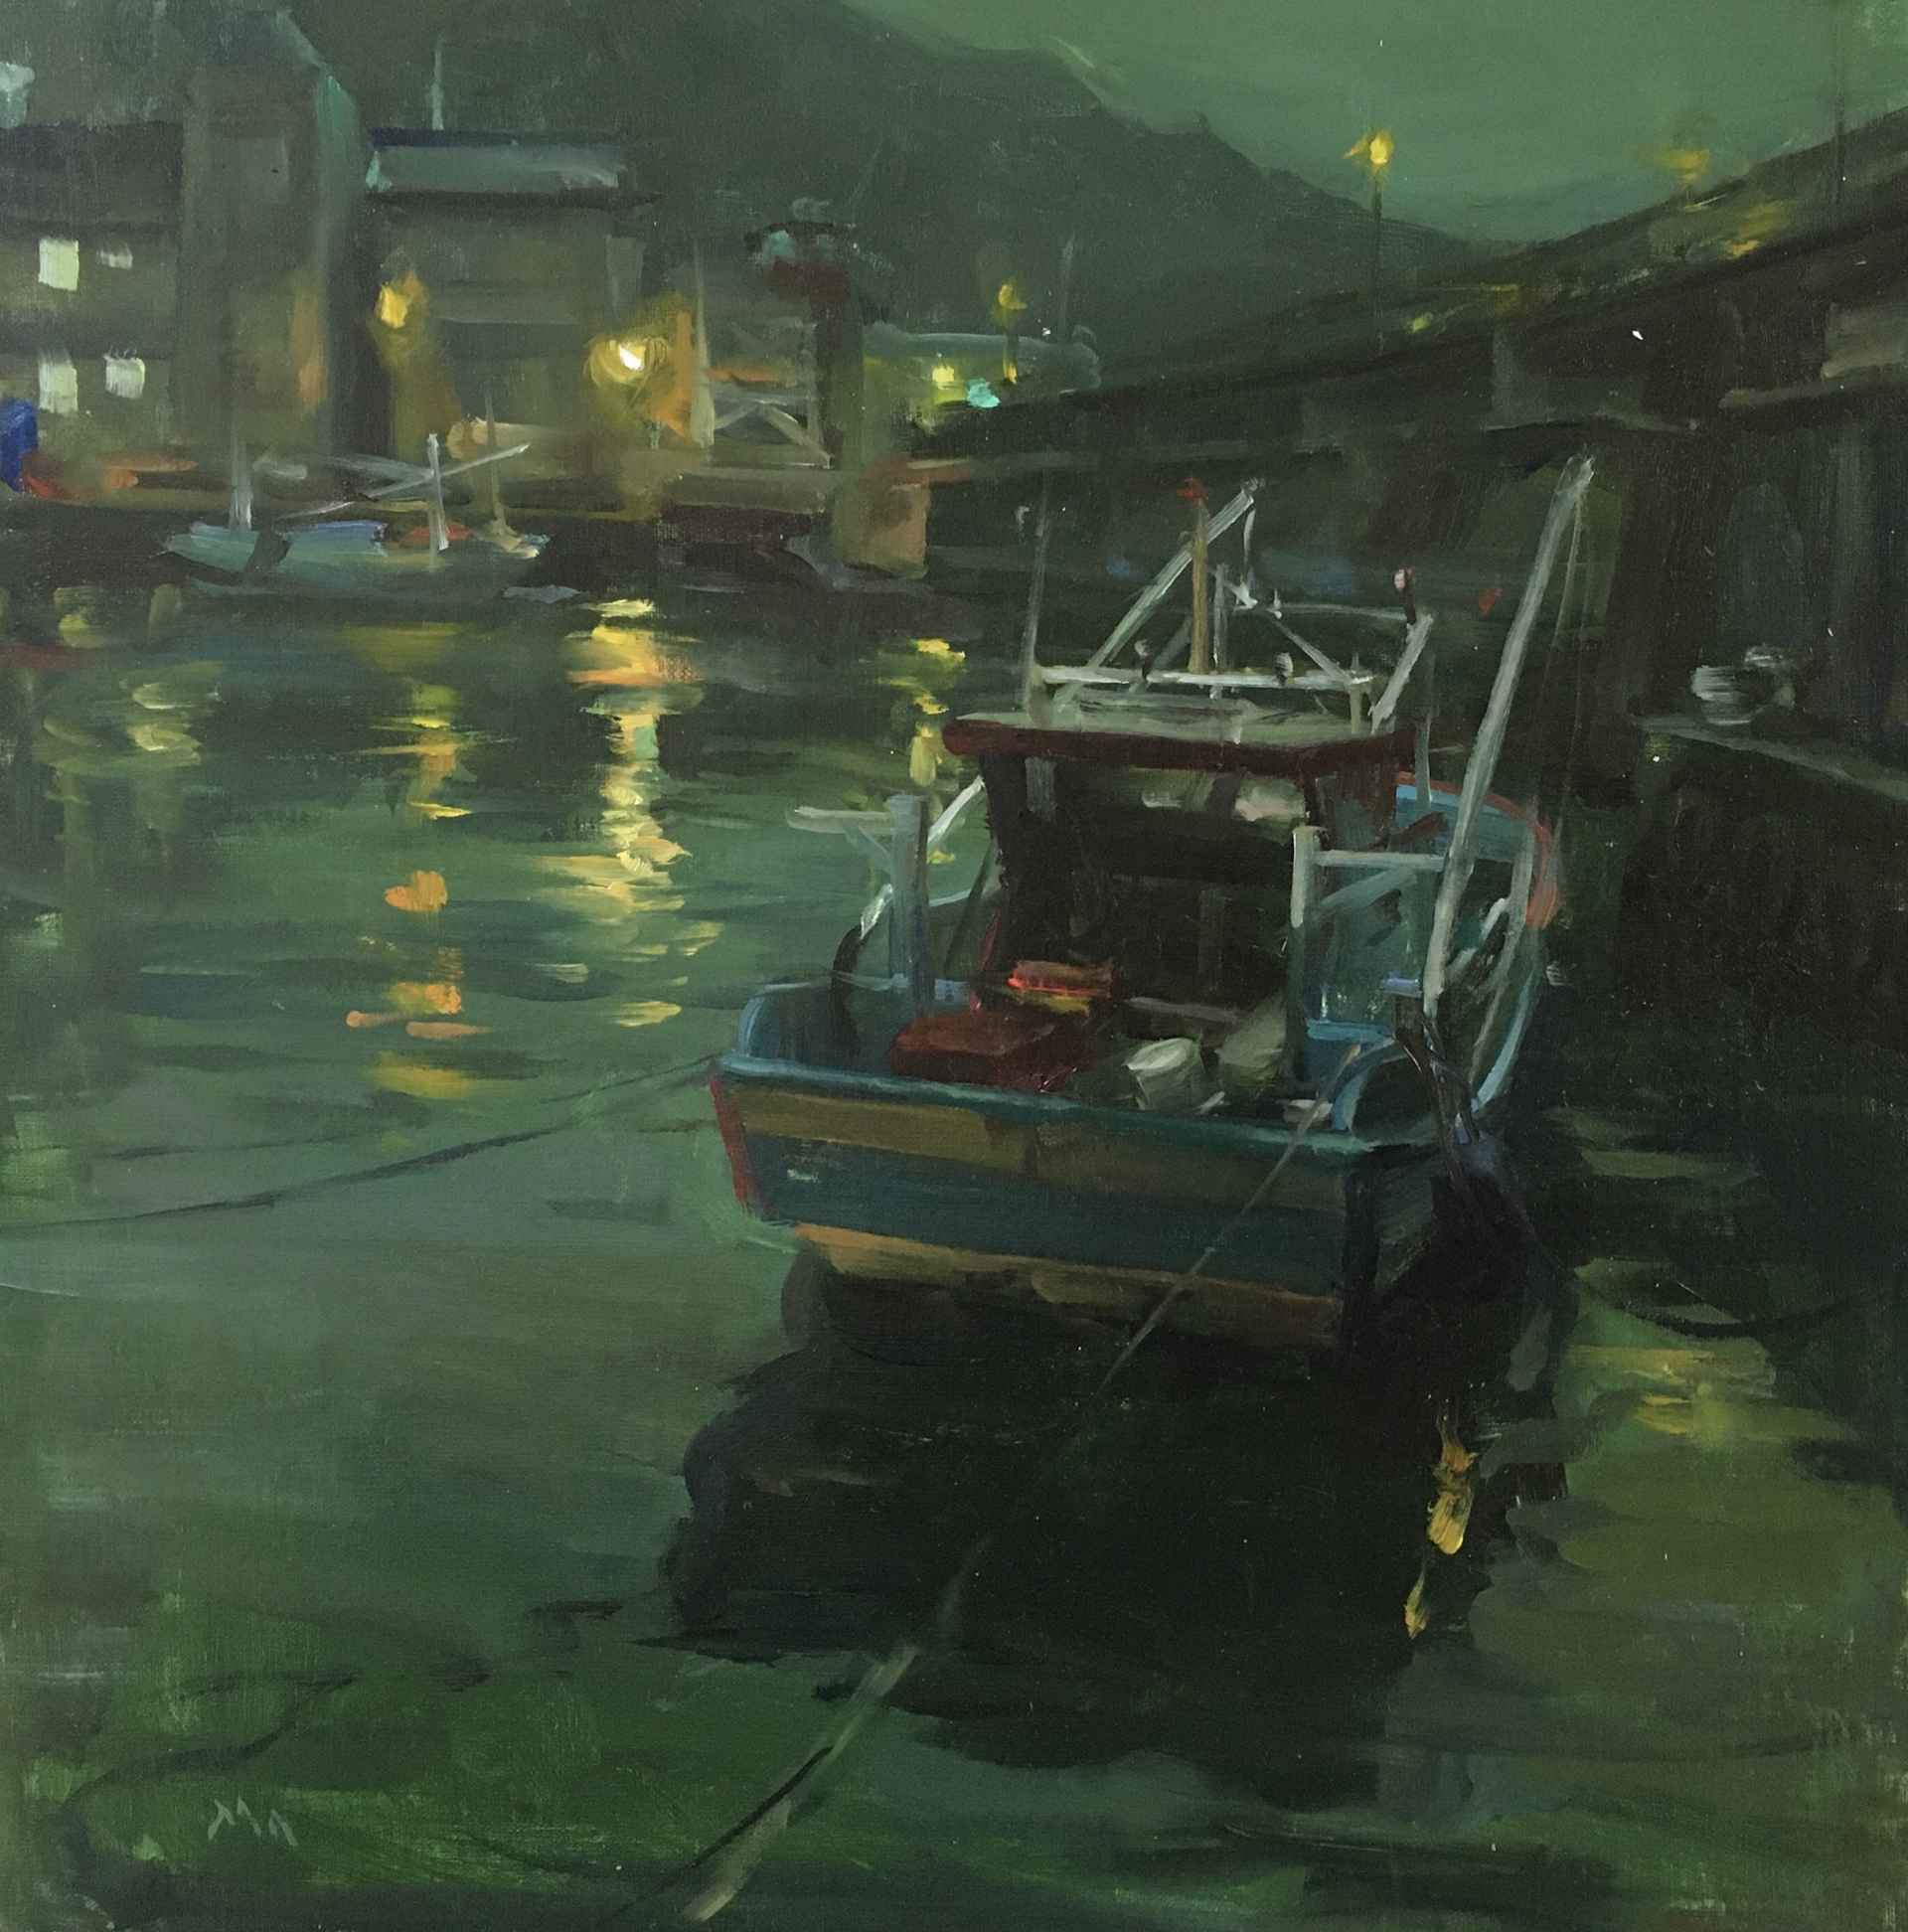 Keelung Harbor Nocturne in Green by Kyle Ma